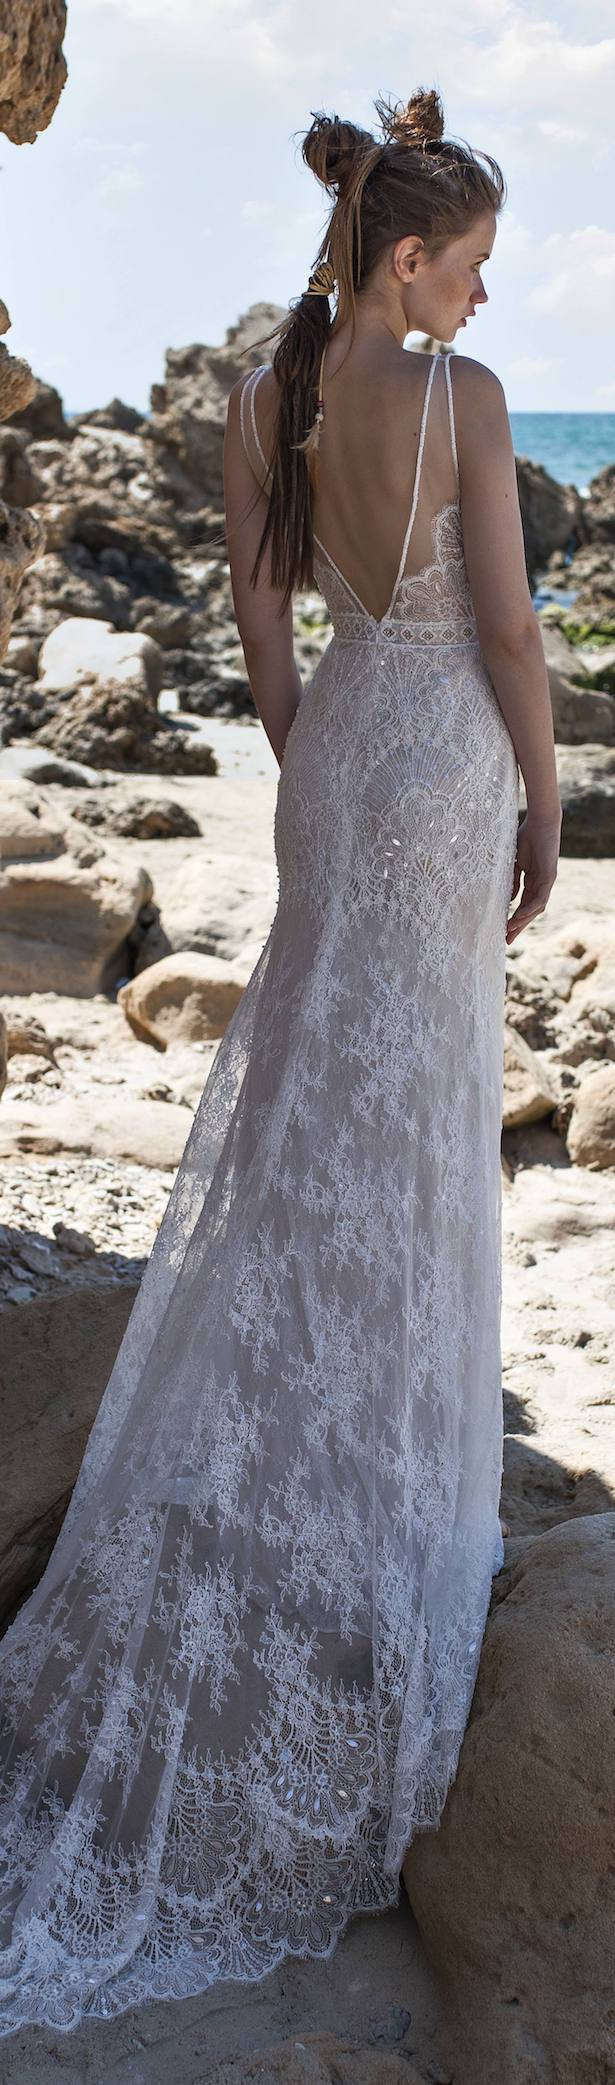 Wedding Dress by Limor Rosen Bridal Couture 2018 Free Spirit Collection - Sierra